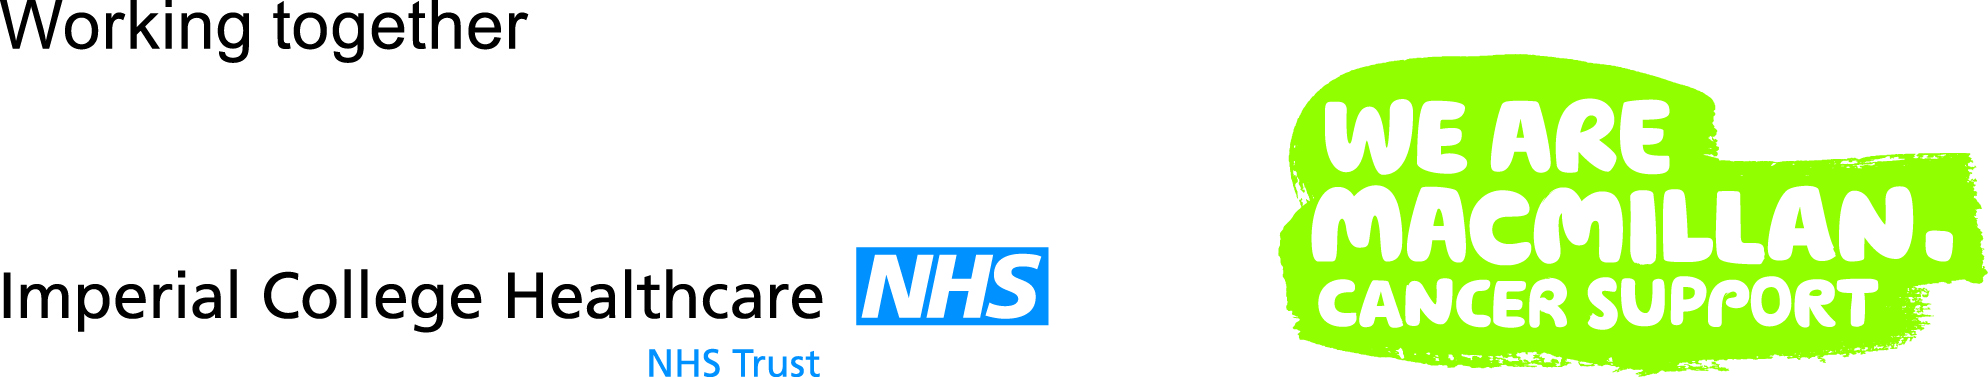 Logo showing imperial college healthcare NHS Trust and Macmillan Cancer Support working together.